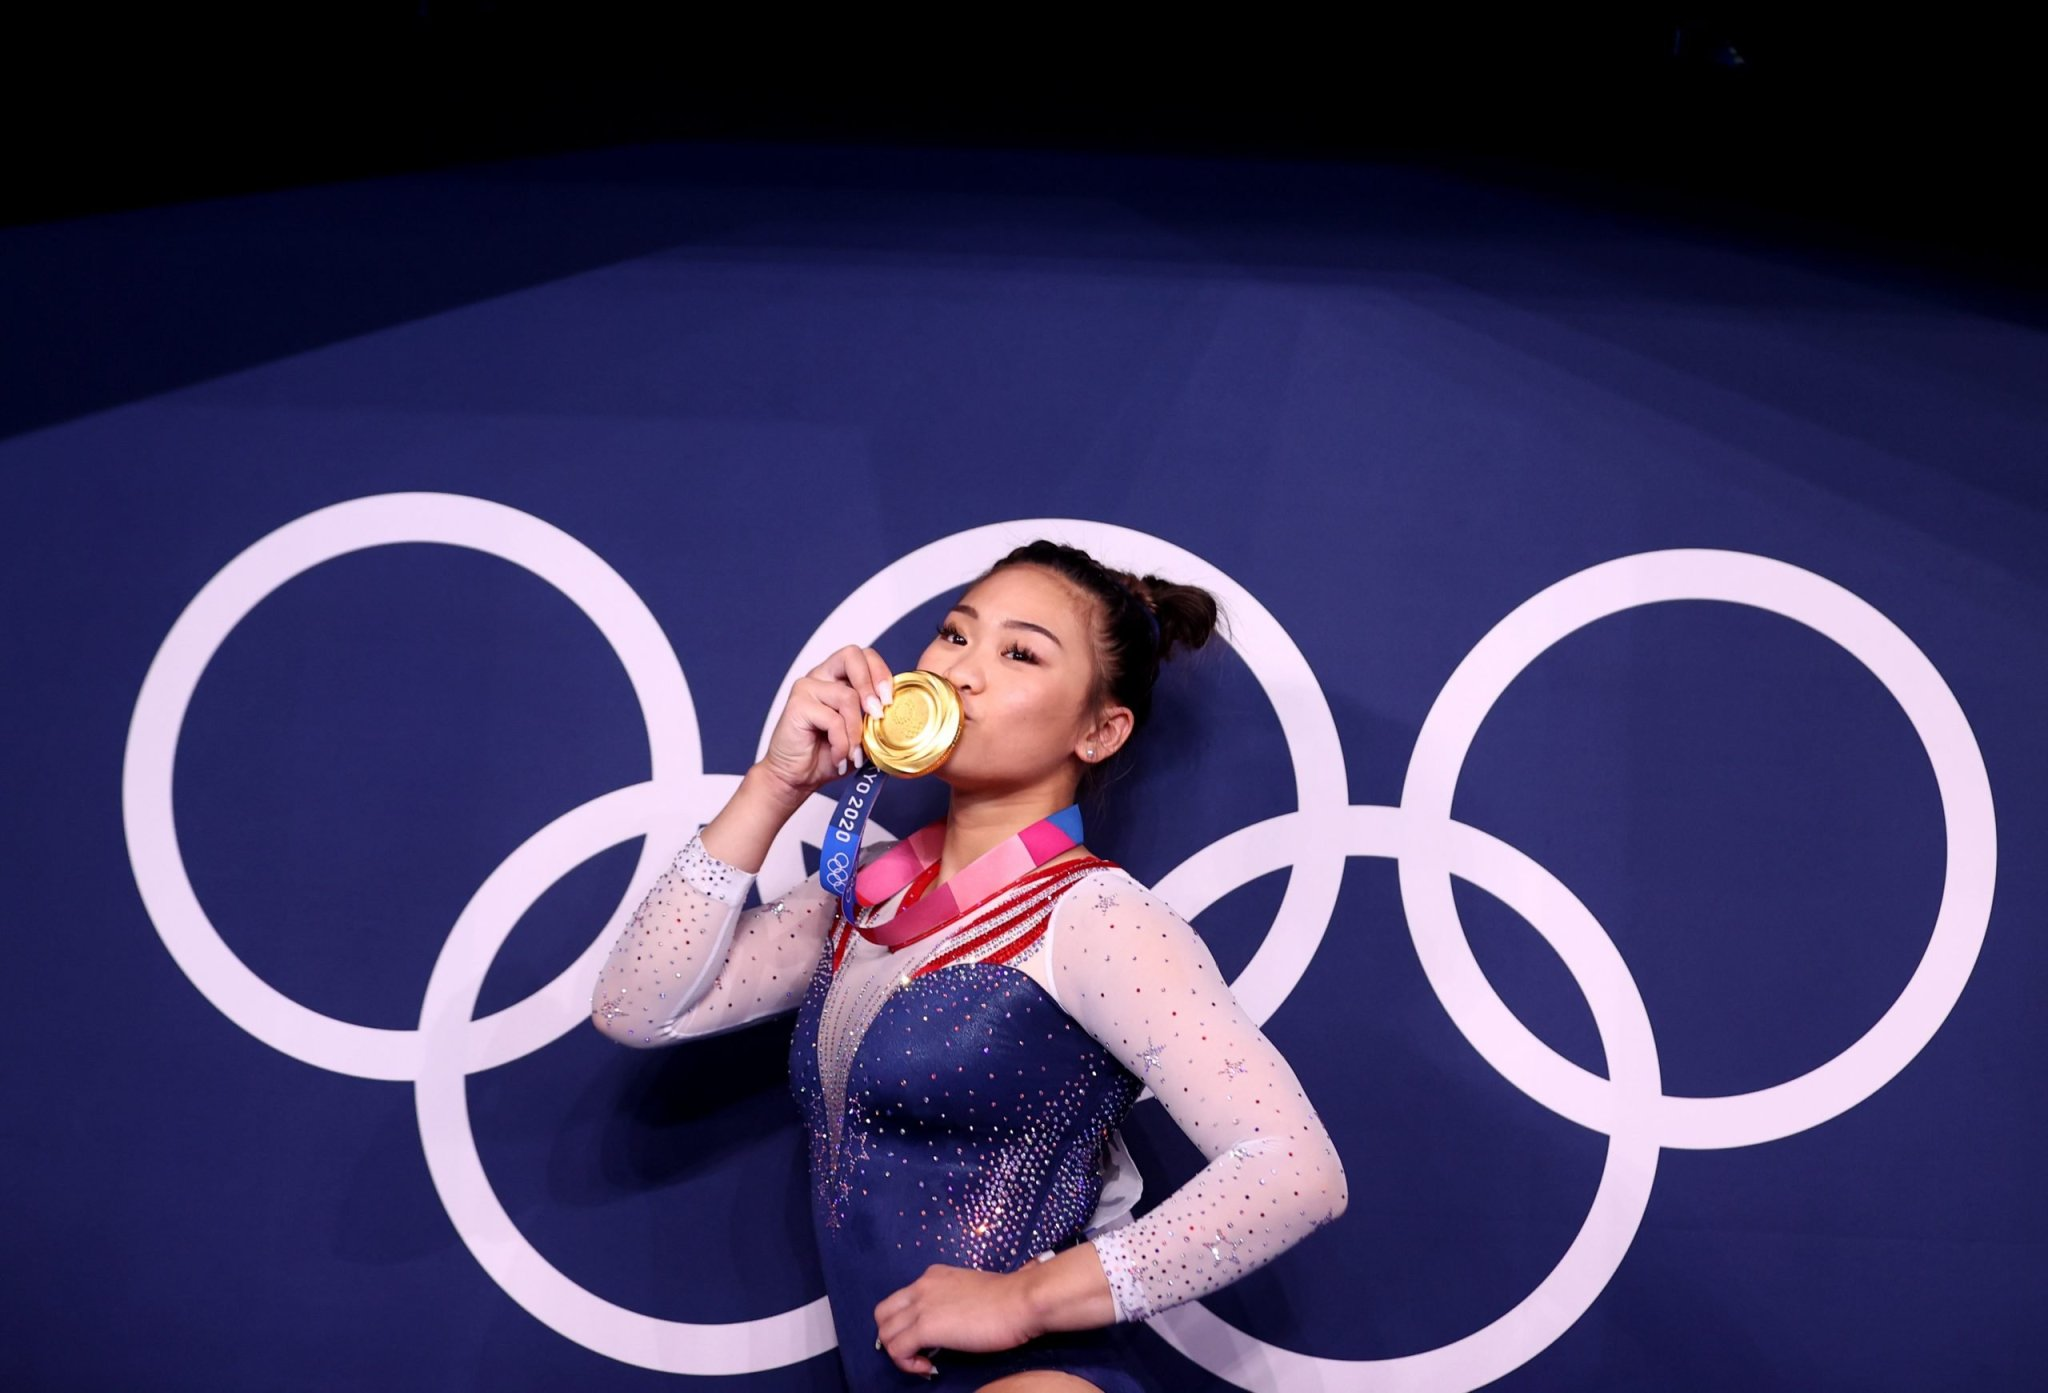 Gymnastics-USA's Lee taking gold home to her father and Hmong community